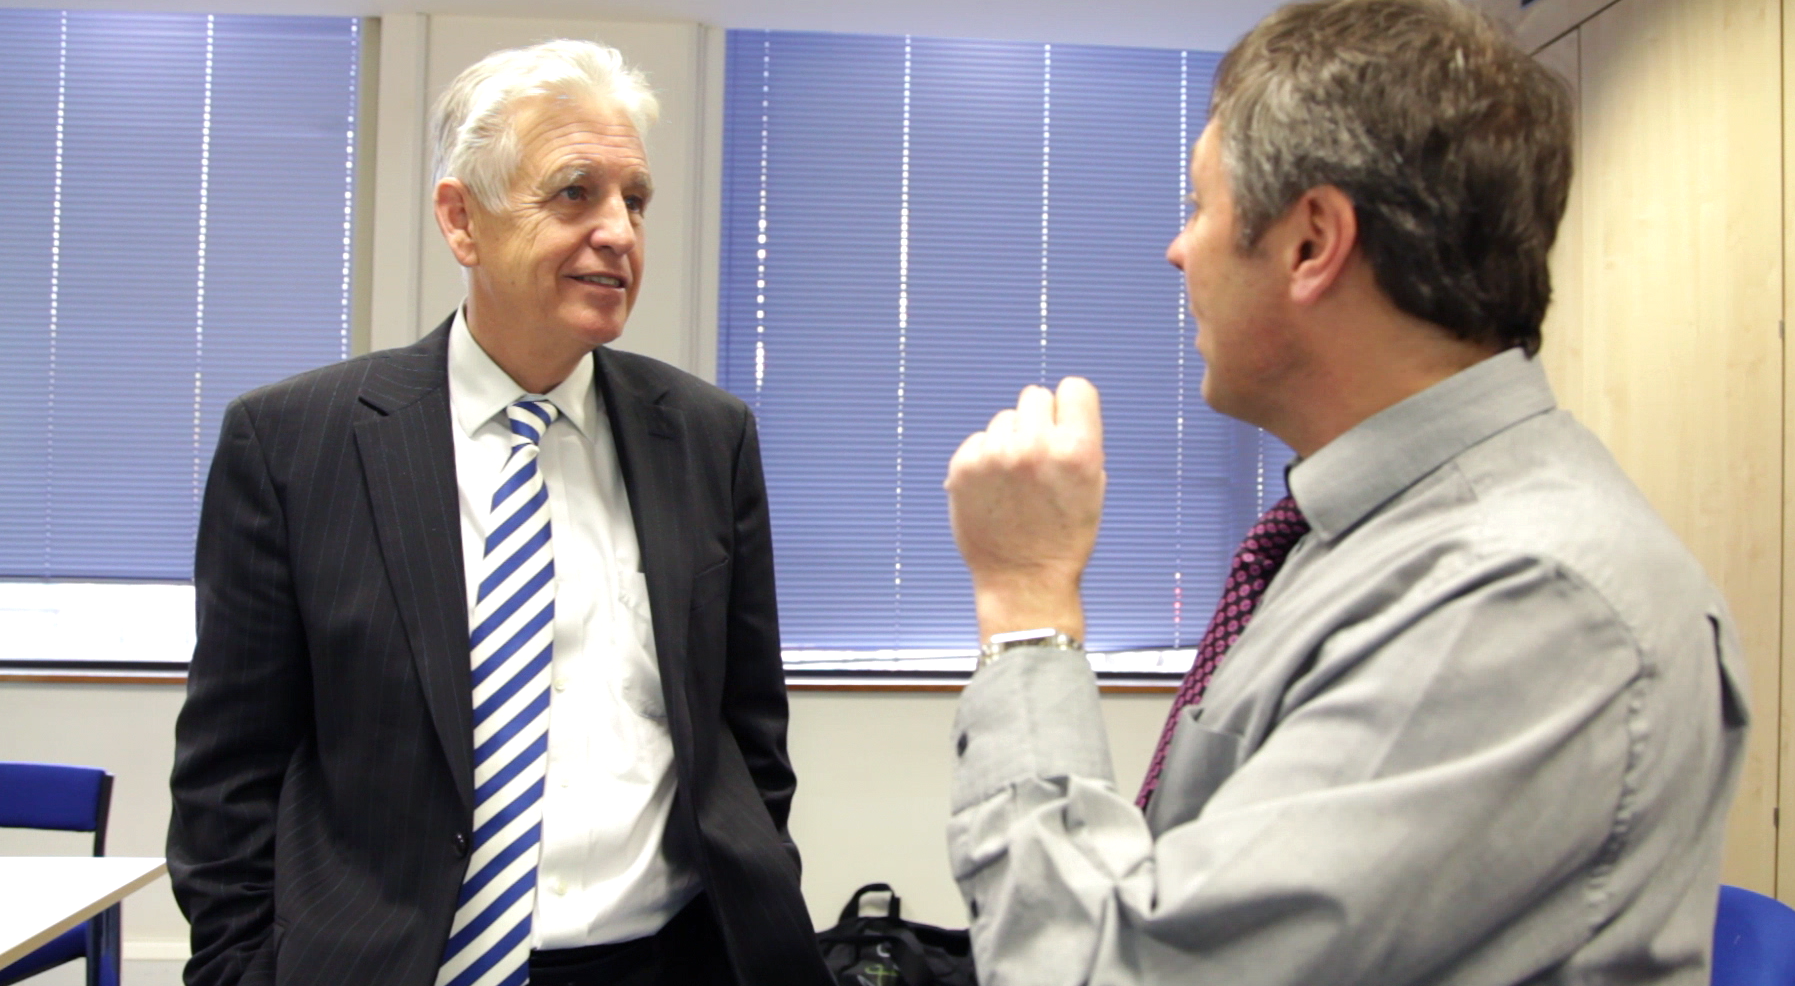 Paul Durrant (MD RPD) having a chat with Nicholas Owen on the days activities